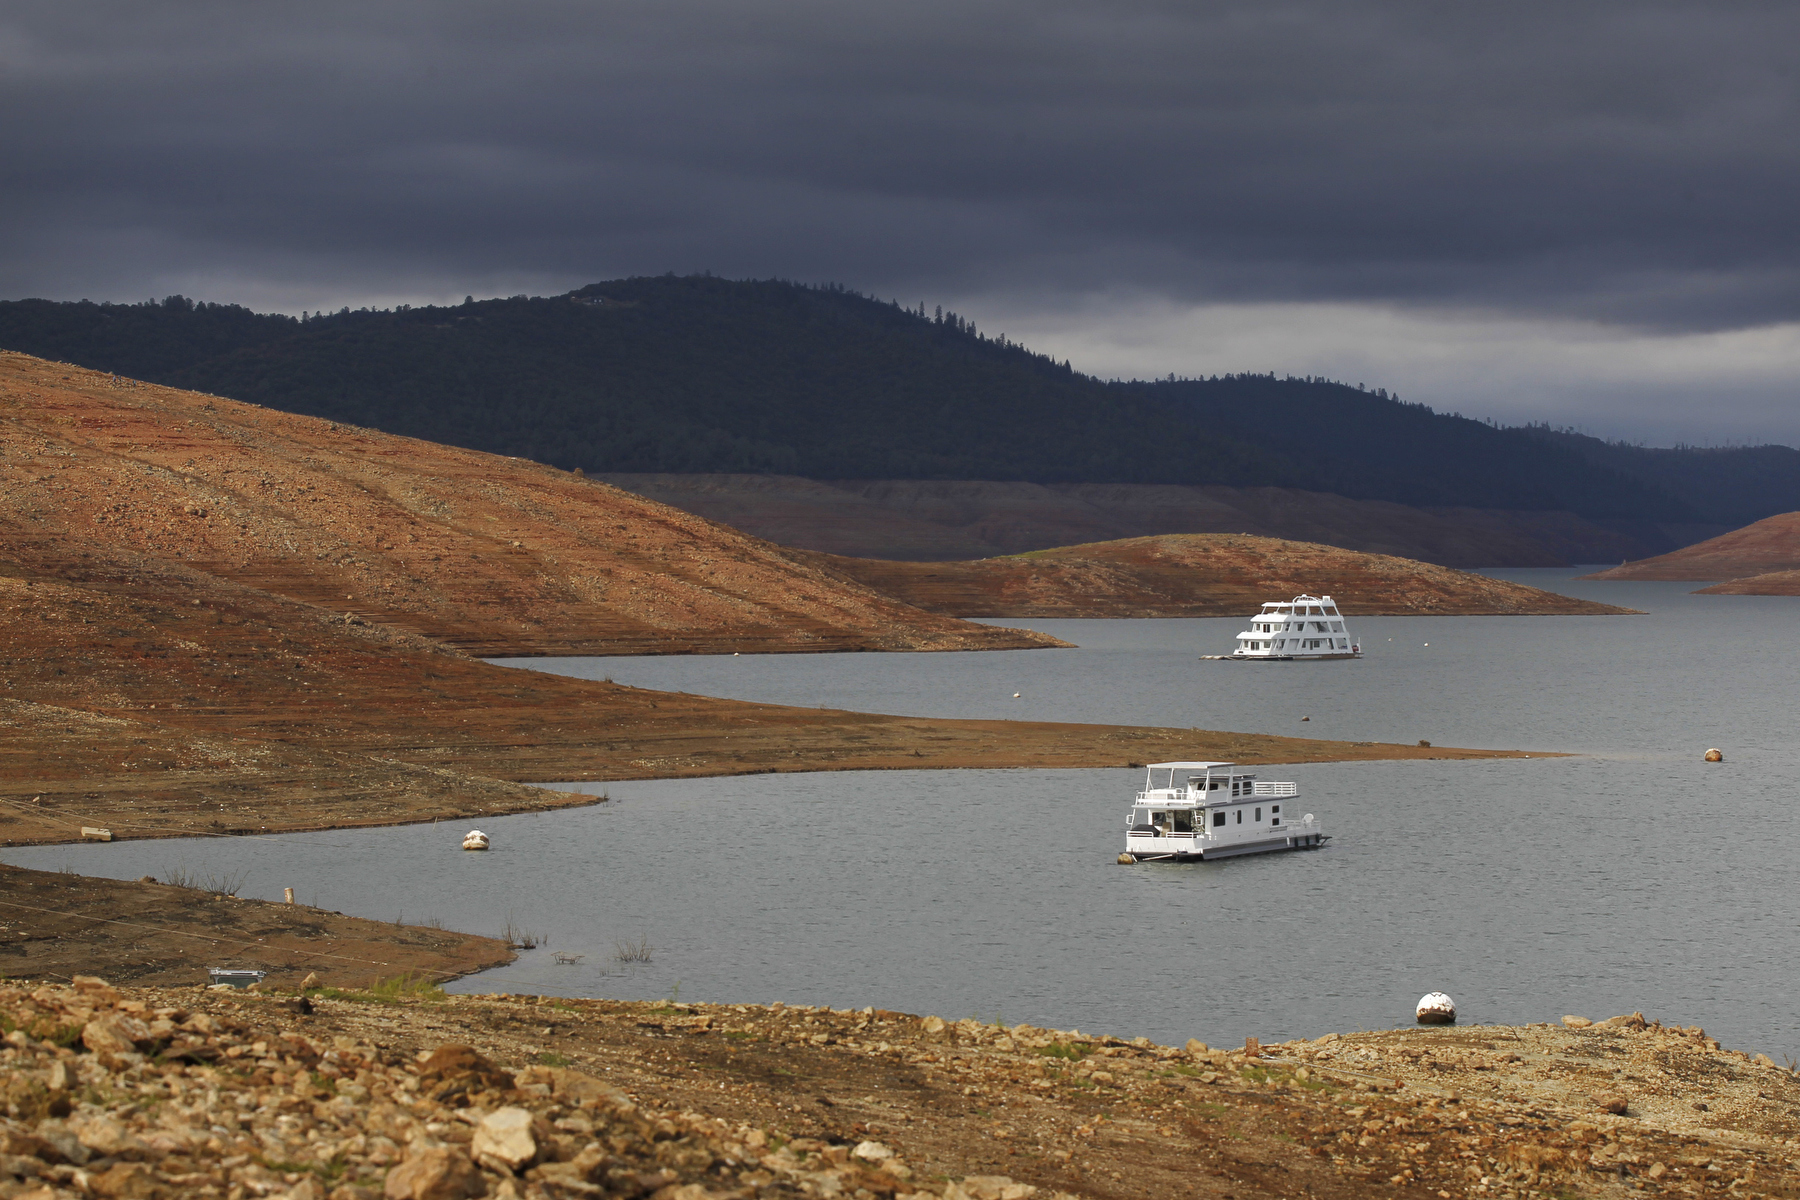 House boats sit idle in the low water of Lake Oroville Nov. 29, 2014 in Oroville, Calif. Despite recent rainfall, California's second largest reservoir is near the 1977 historic low at 26 percent of capacity. {quote}This has been quite the progression,{quote} said longtime resident Sharon Smith, who has been walking the dam since she moved to the area in 1997. {quote}It seems like it's happening so fast,{quote} she said.